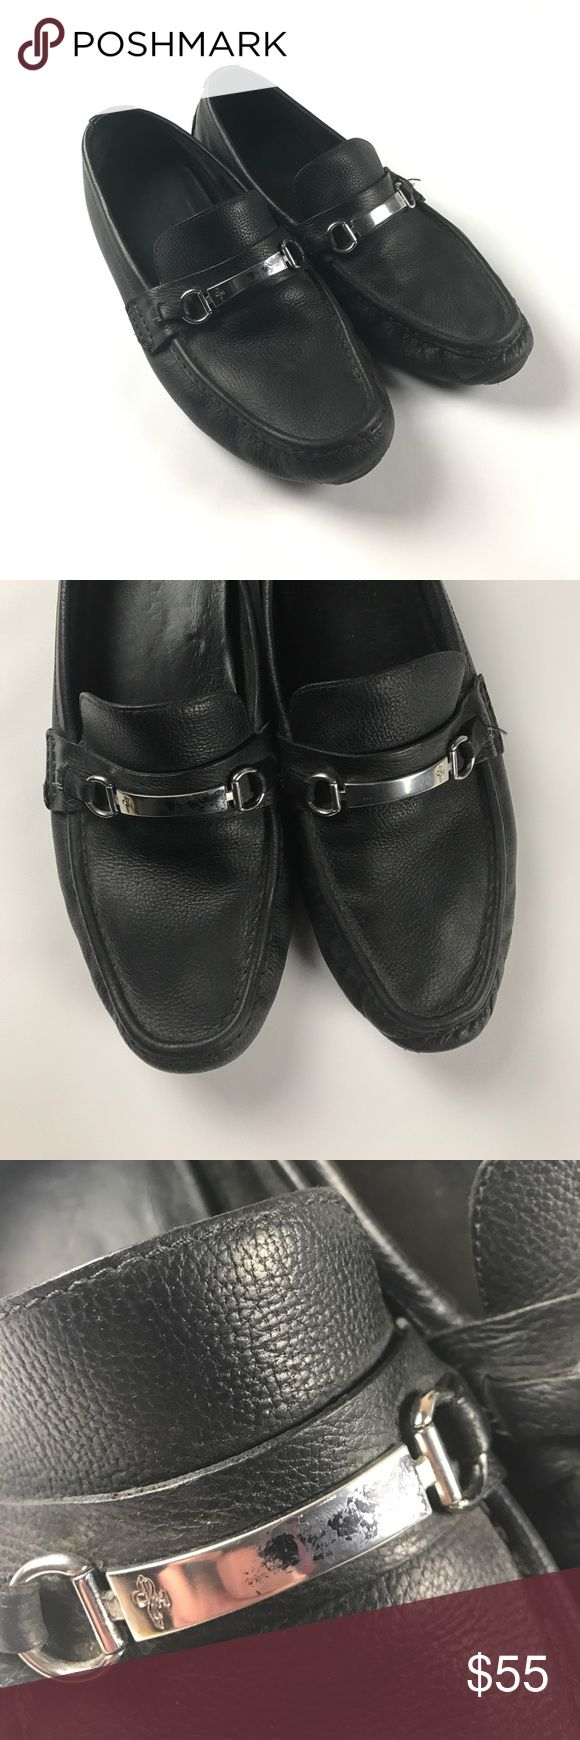 Men's Cole Haan 13 Casual Leather Driving Loafers Some scuffs on the metal bar on the right shoe Cole Haan Shoes Loafers & Slip-Ons